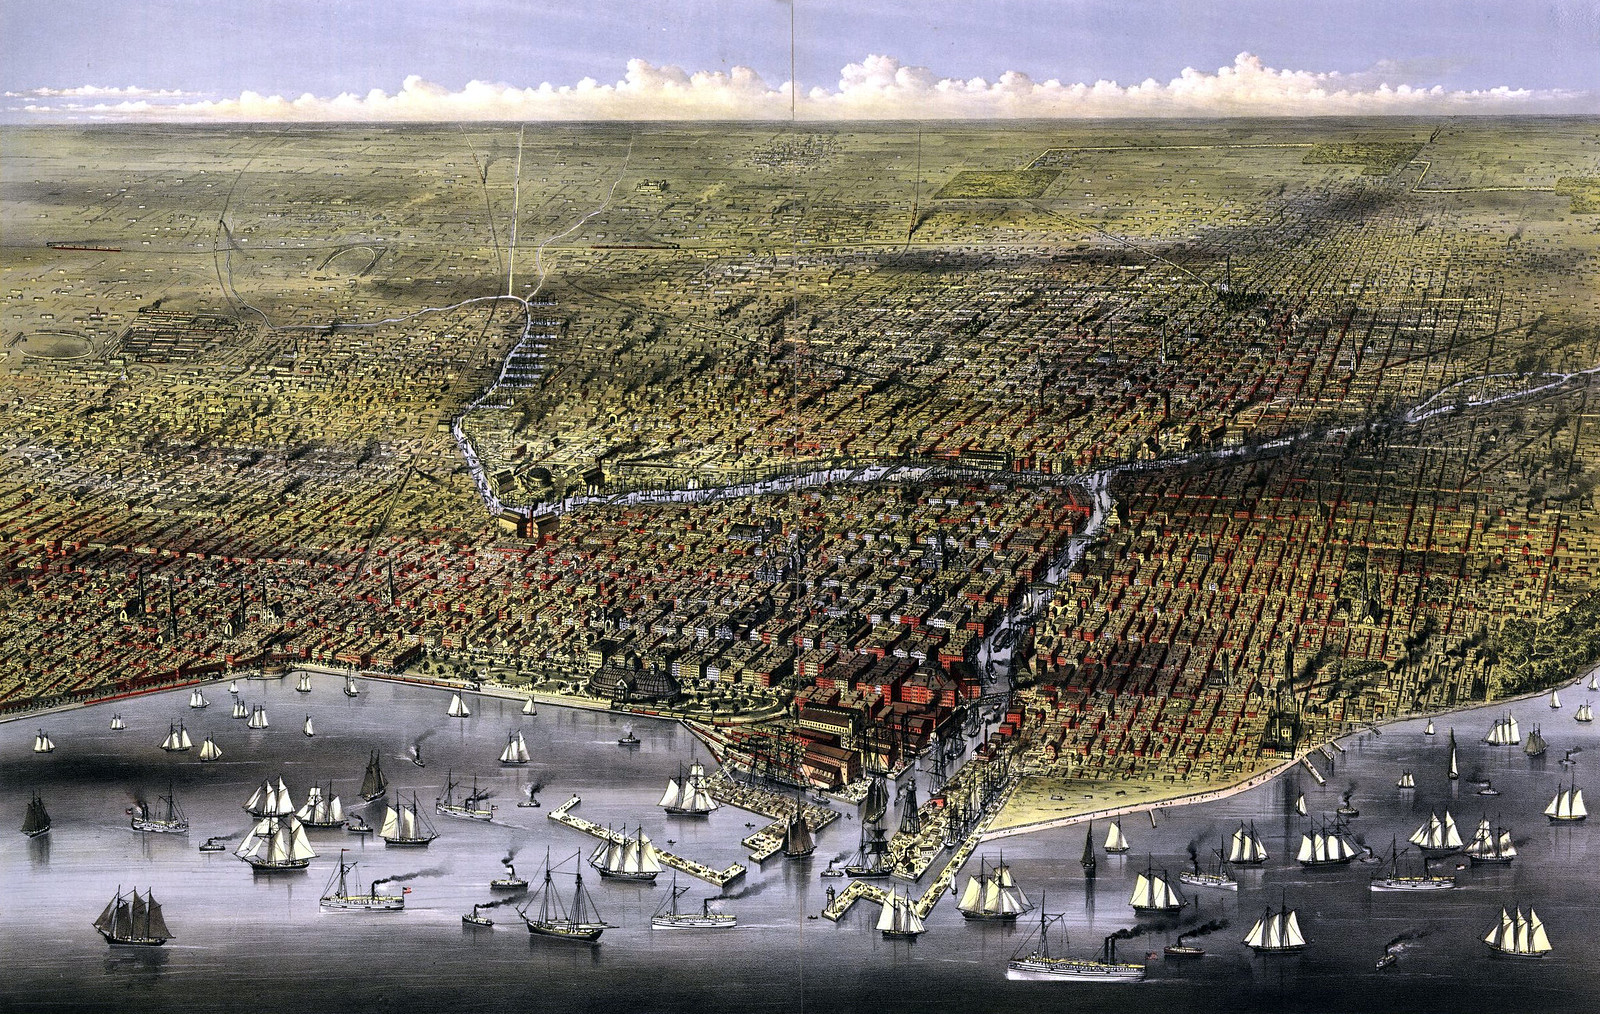 The City of Chicago, c. 1874